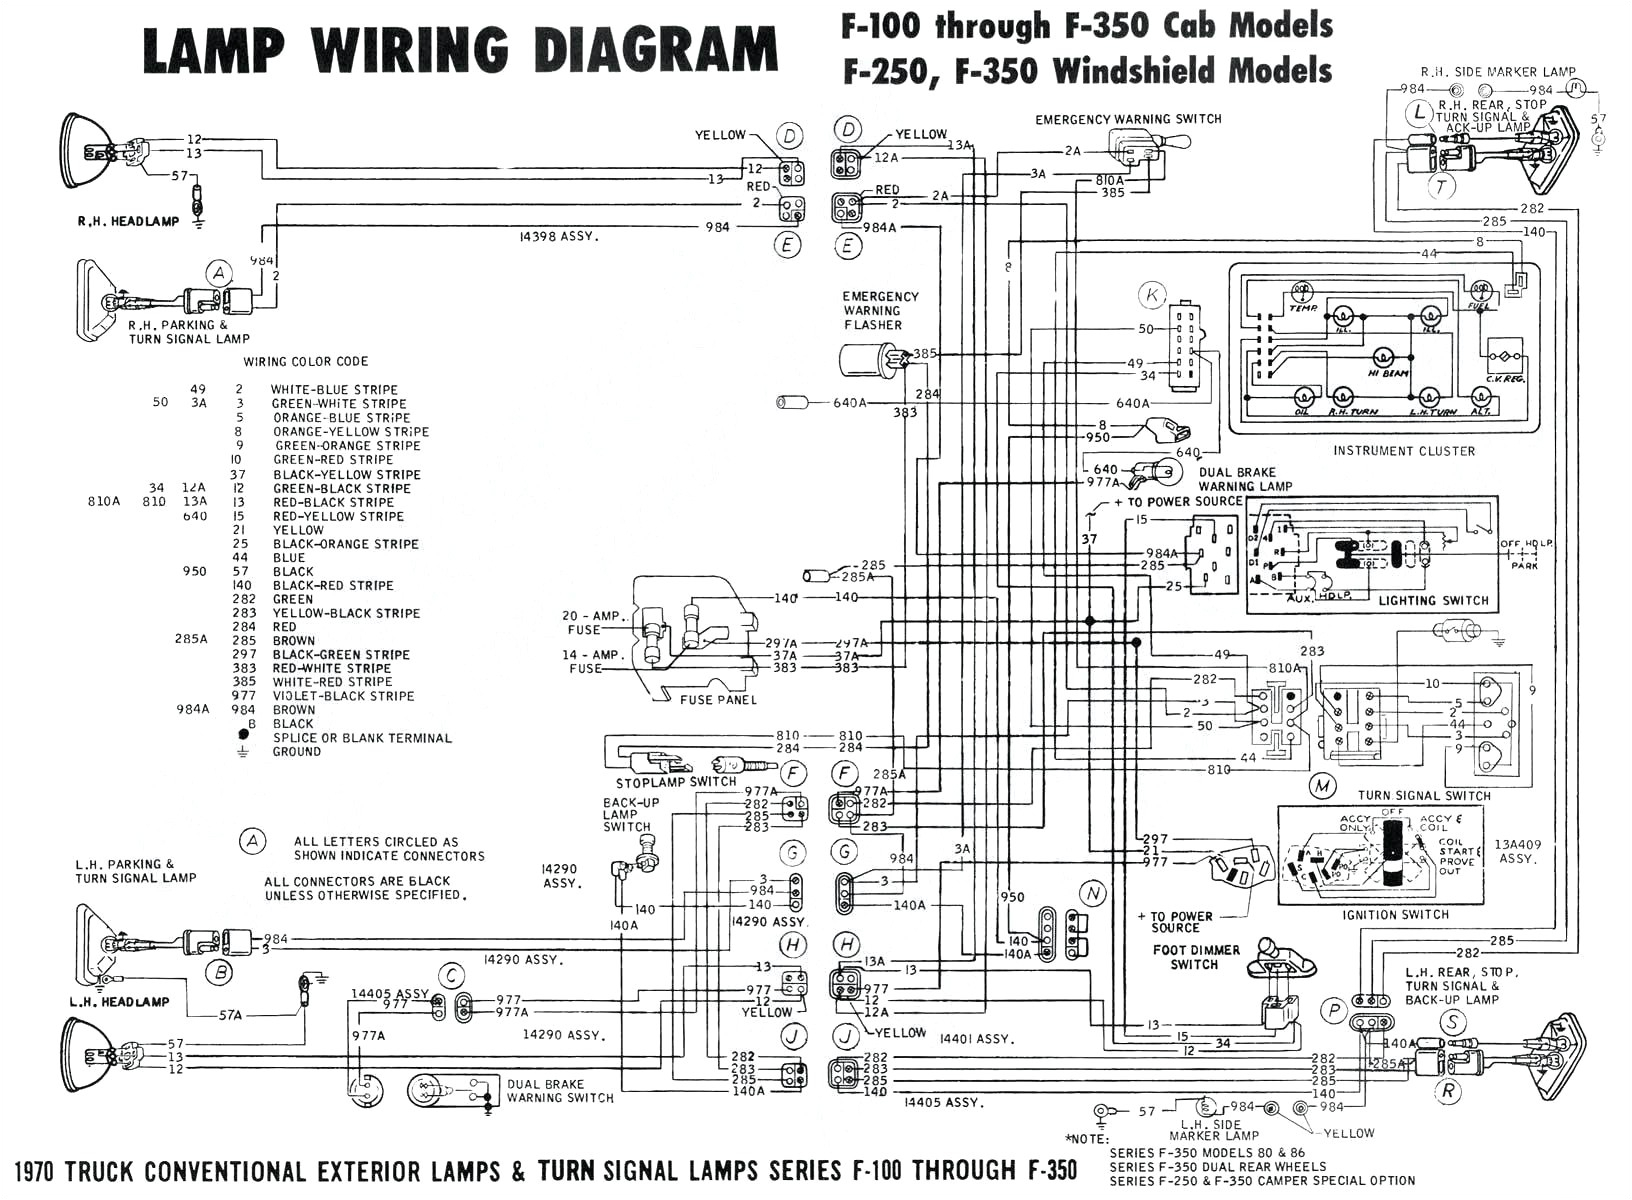 2007 Dodge Ram Headlight Wiring Diagram from autocardesign.org